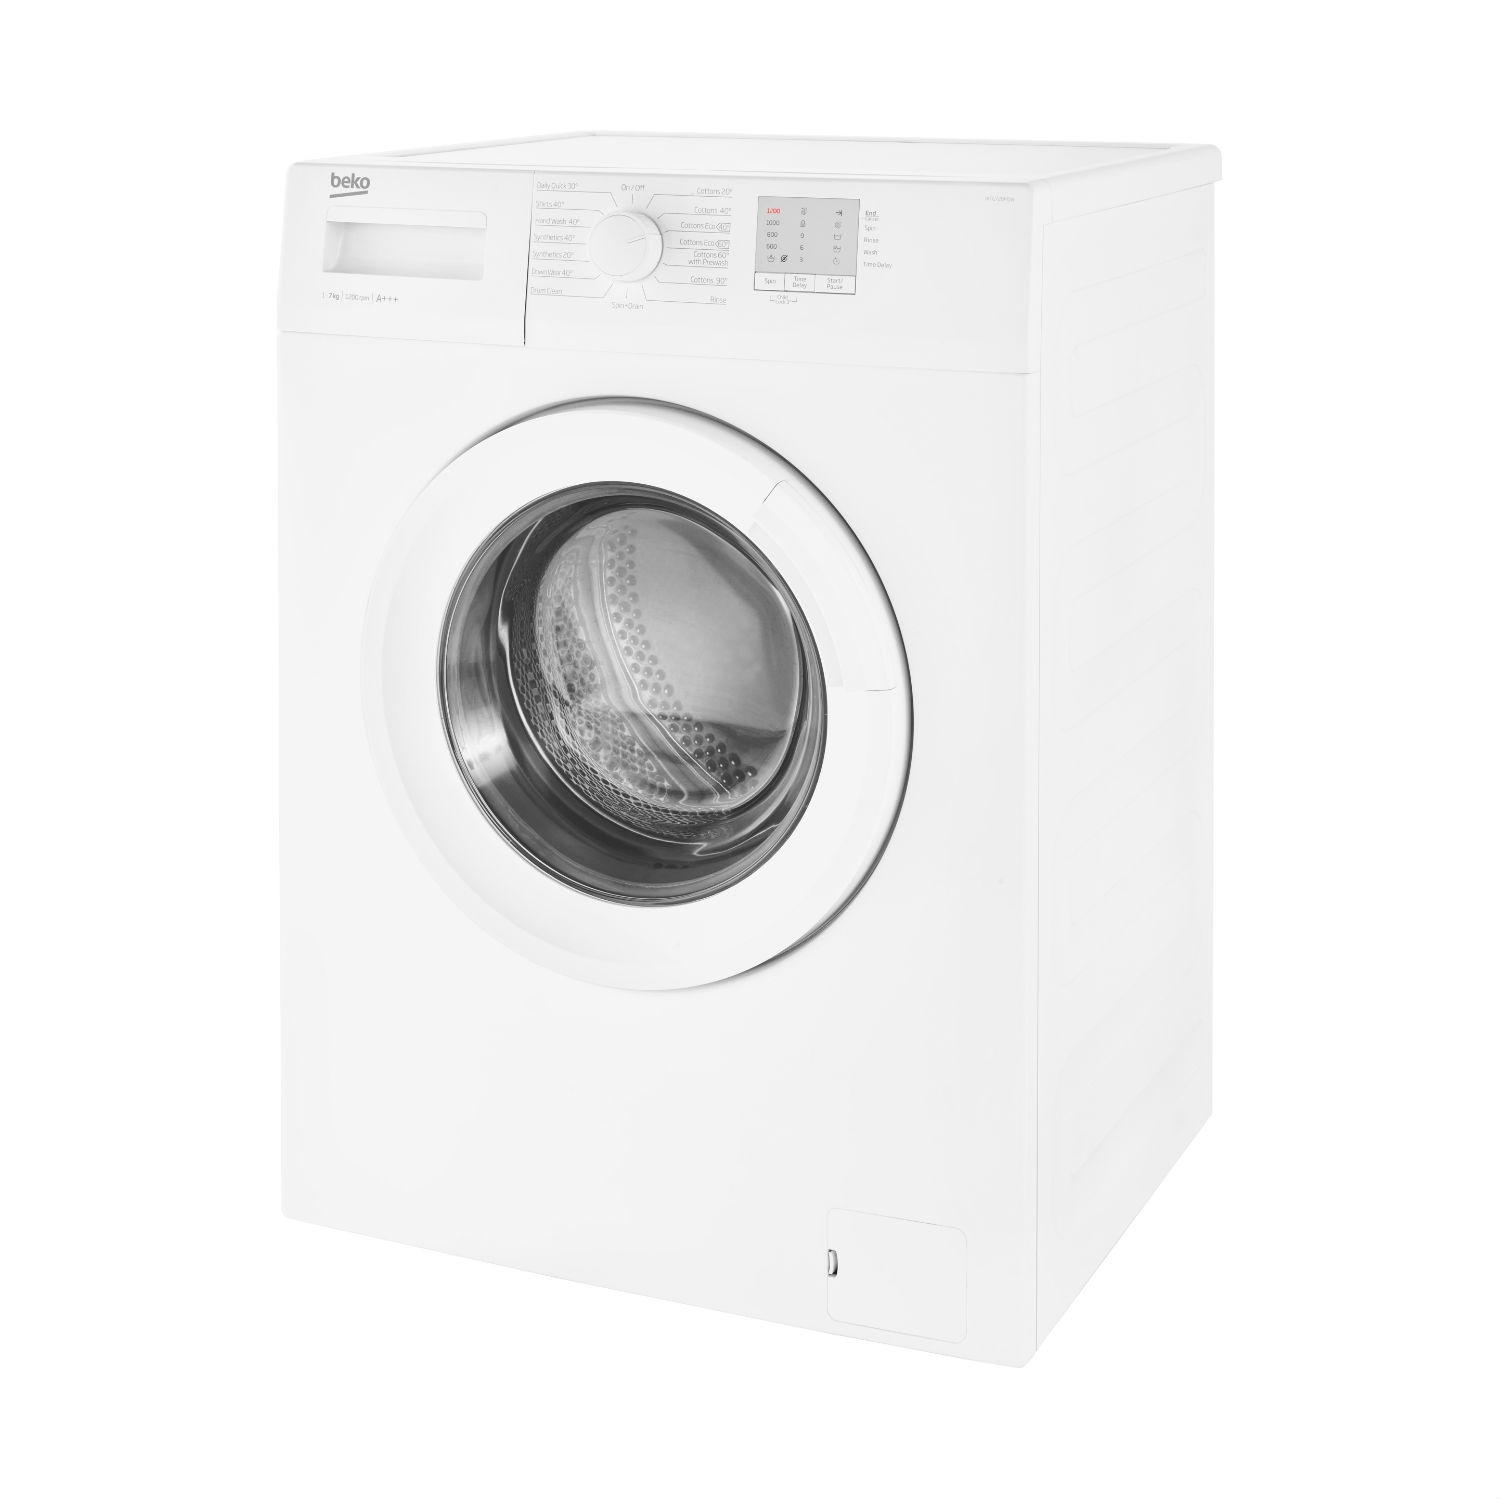 Beko 7kg 1200 Washing Machine - White - A+++ Energy Rated - 3